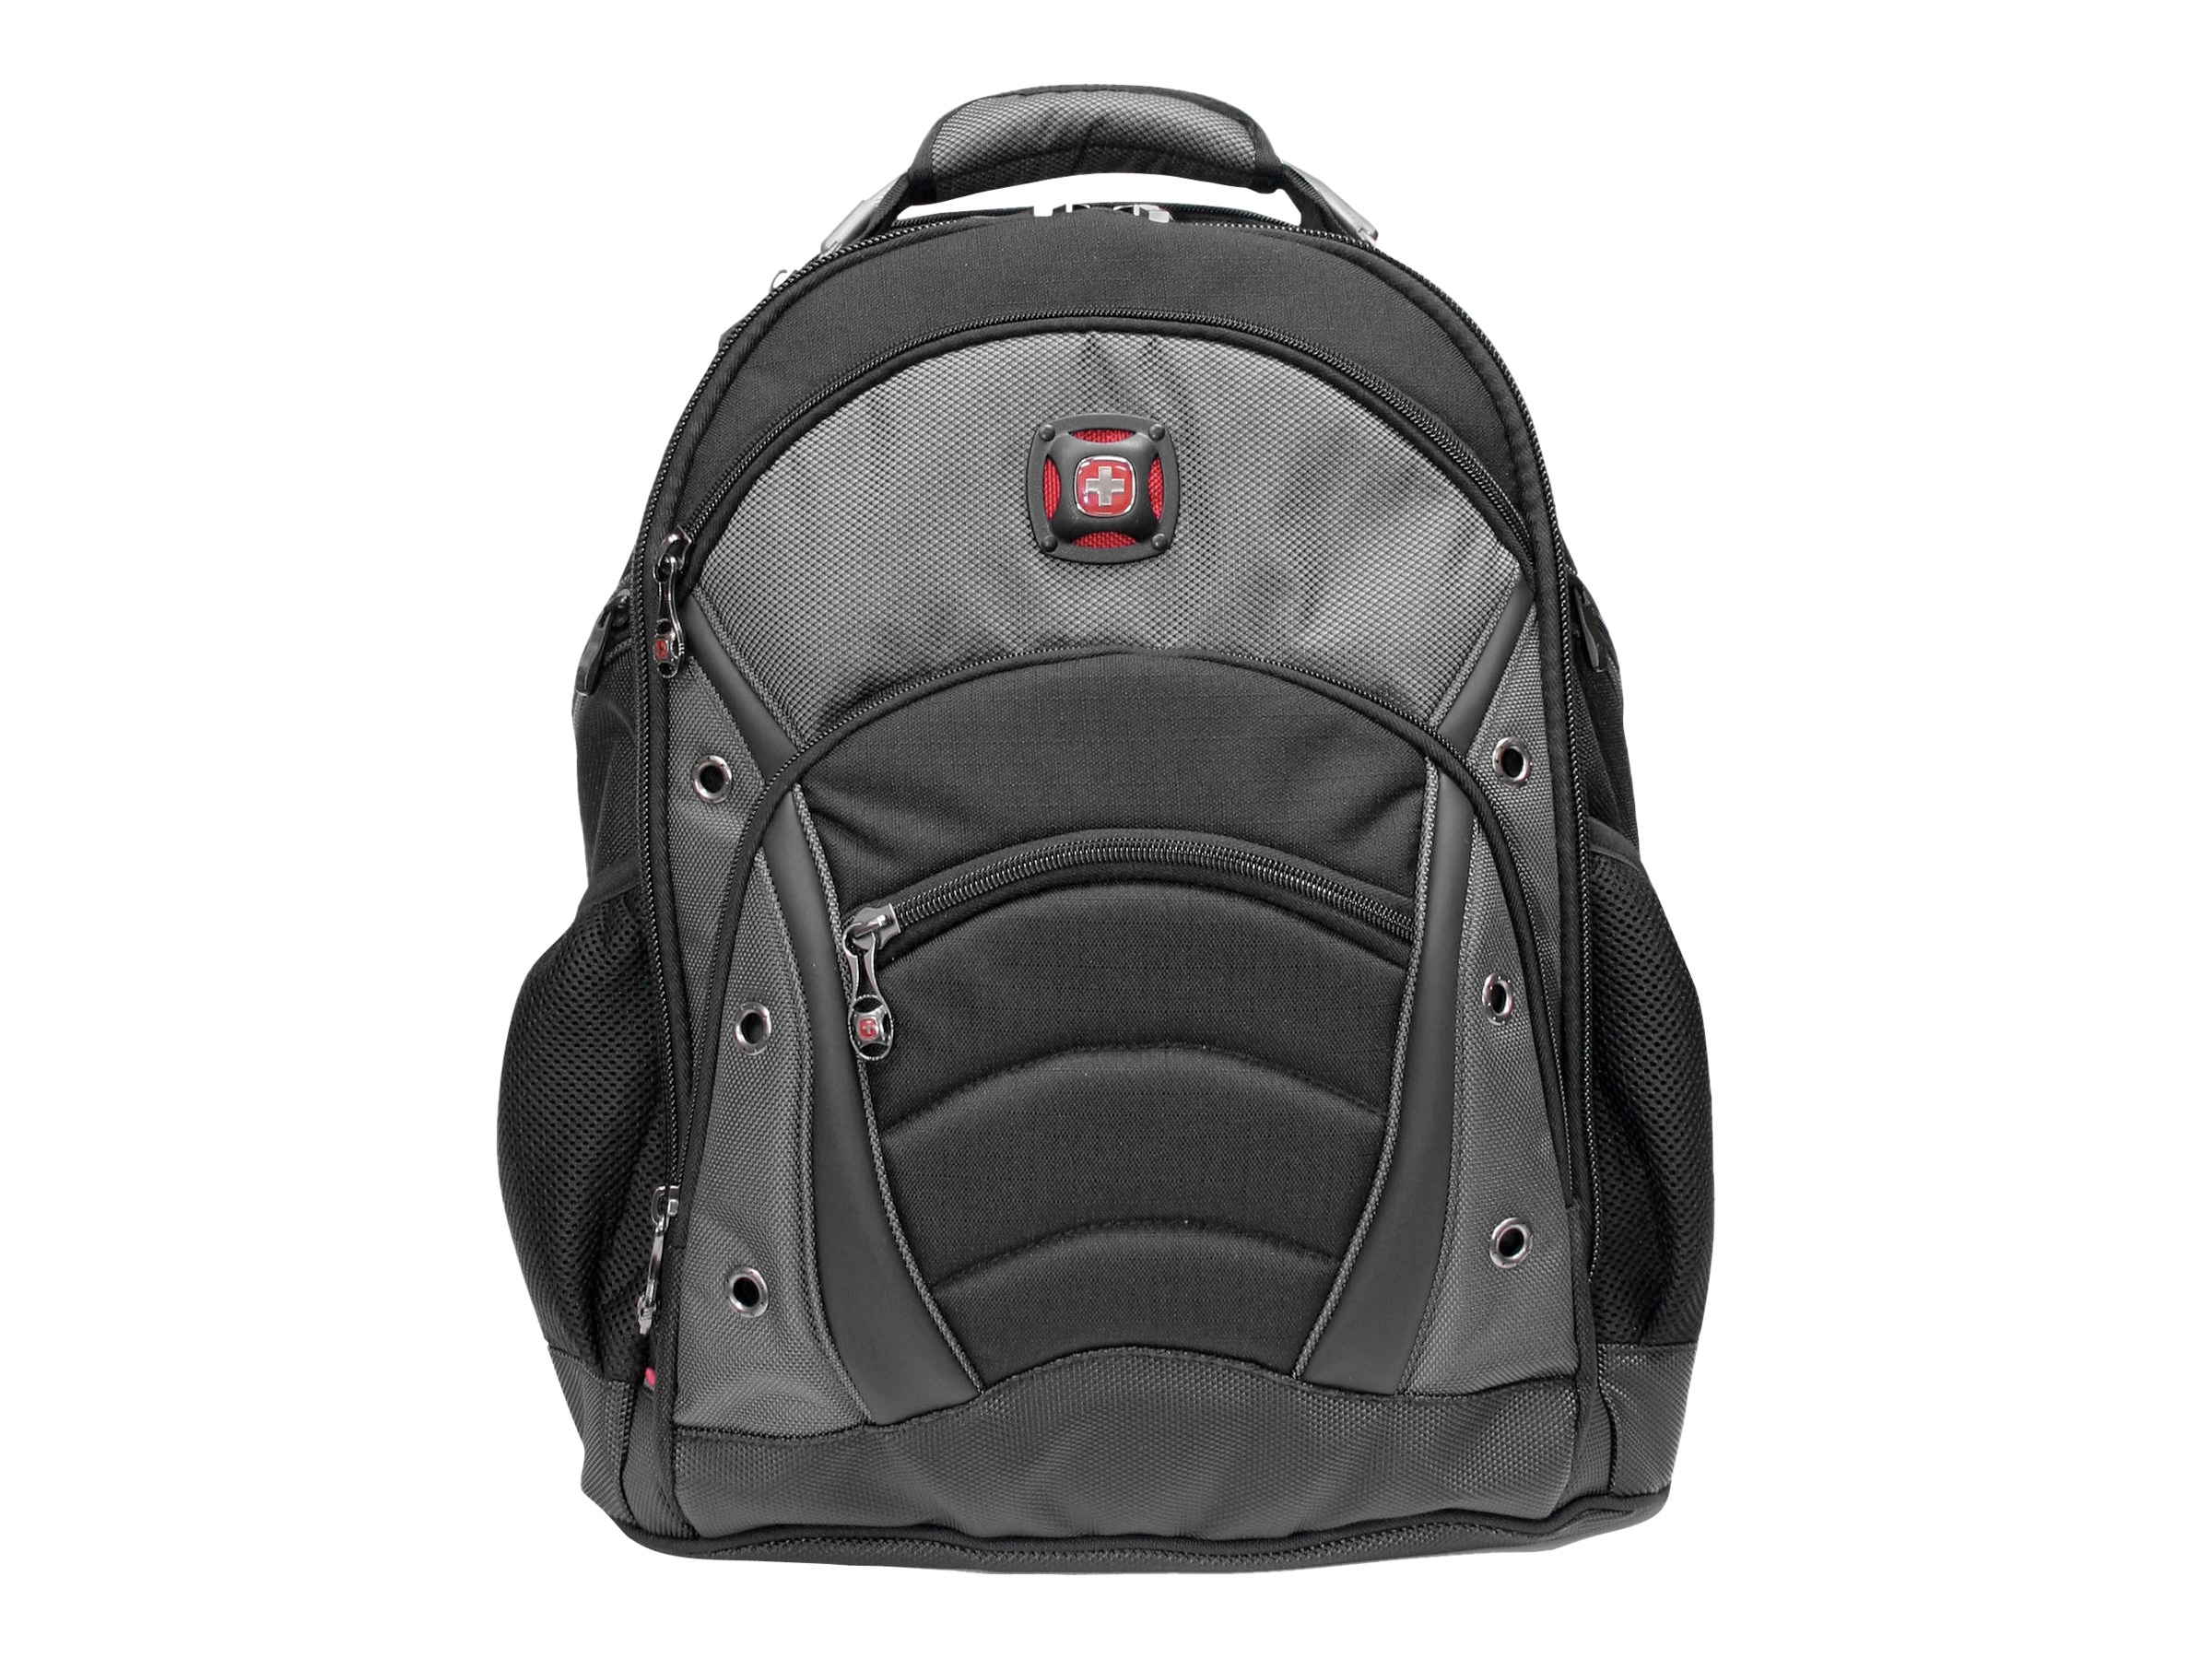 Wenger Swiss Army Synergy Backpack, Poly Nylon, Gray, Fits Most 15.6 Screens, GA-7305-14F00